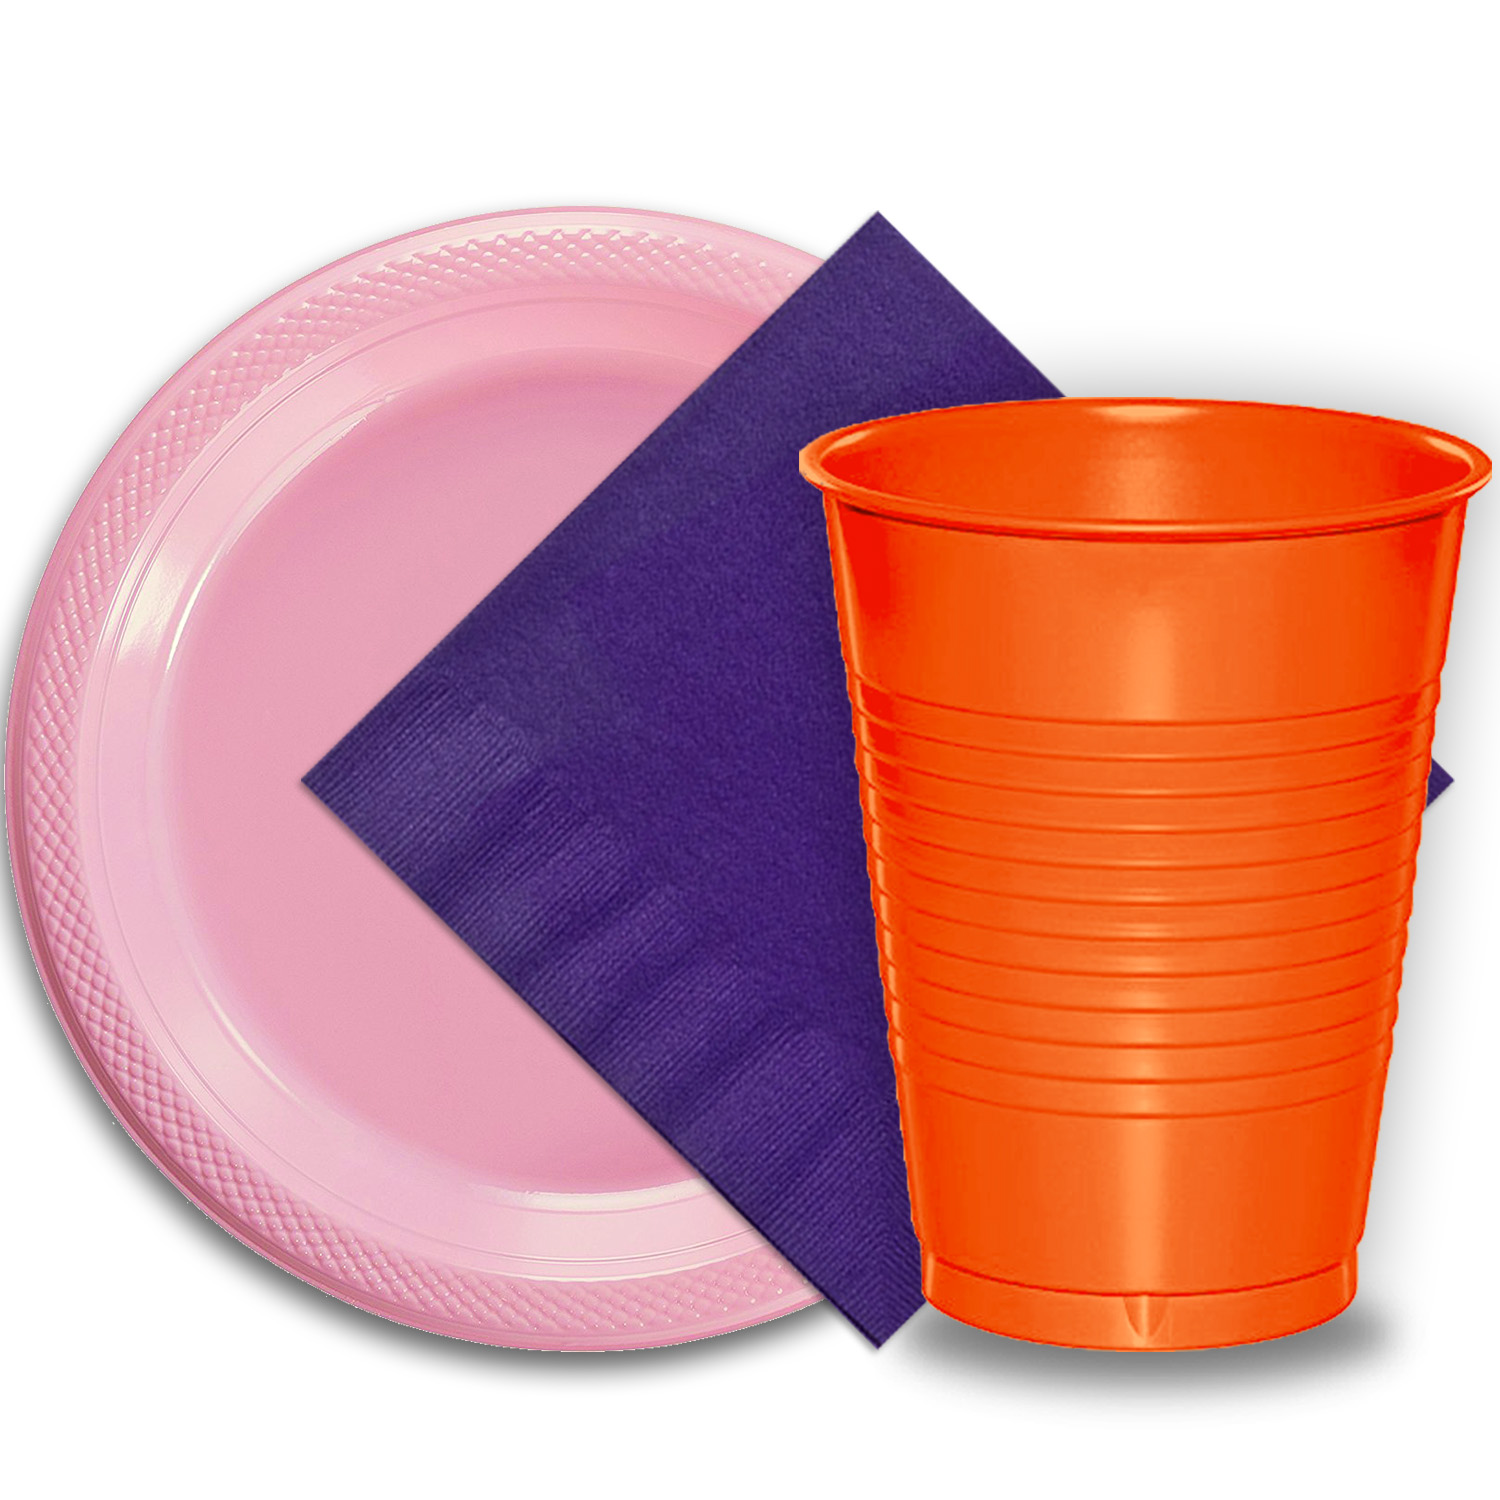 "50 Pink Plastic Plates (9""), 50 Orange Plastic Cups (12 oz.), and 50 Purple Paper Napkins, Dazzelling Colored Disposable Party Supplies Tableware Set for Fifty Guests."